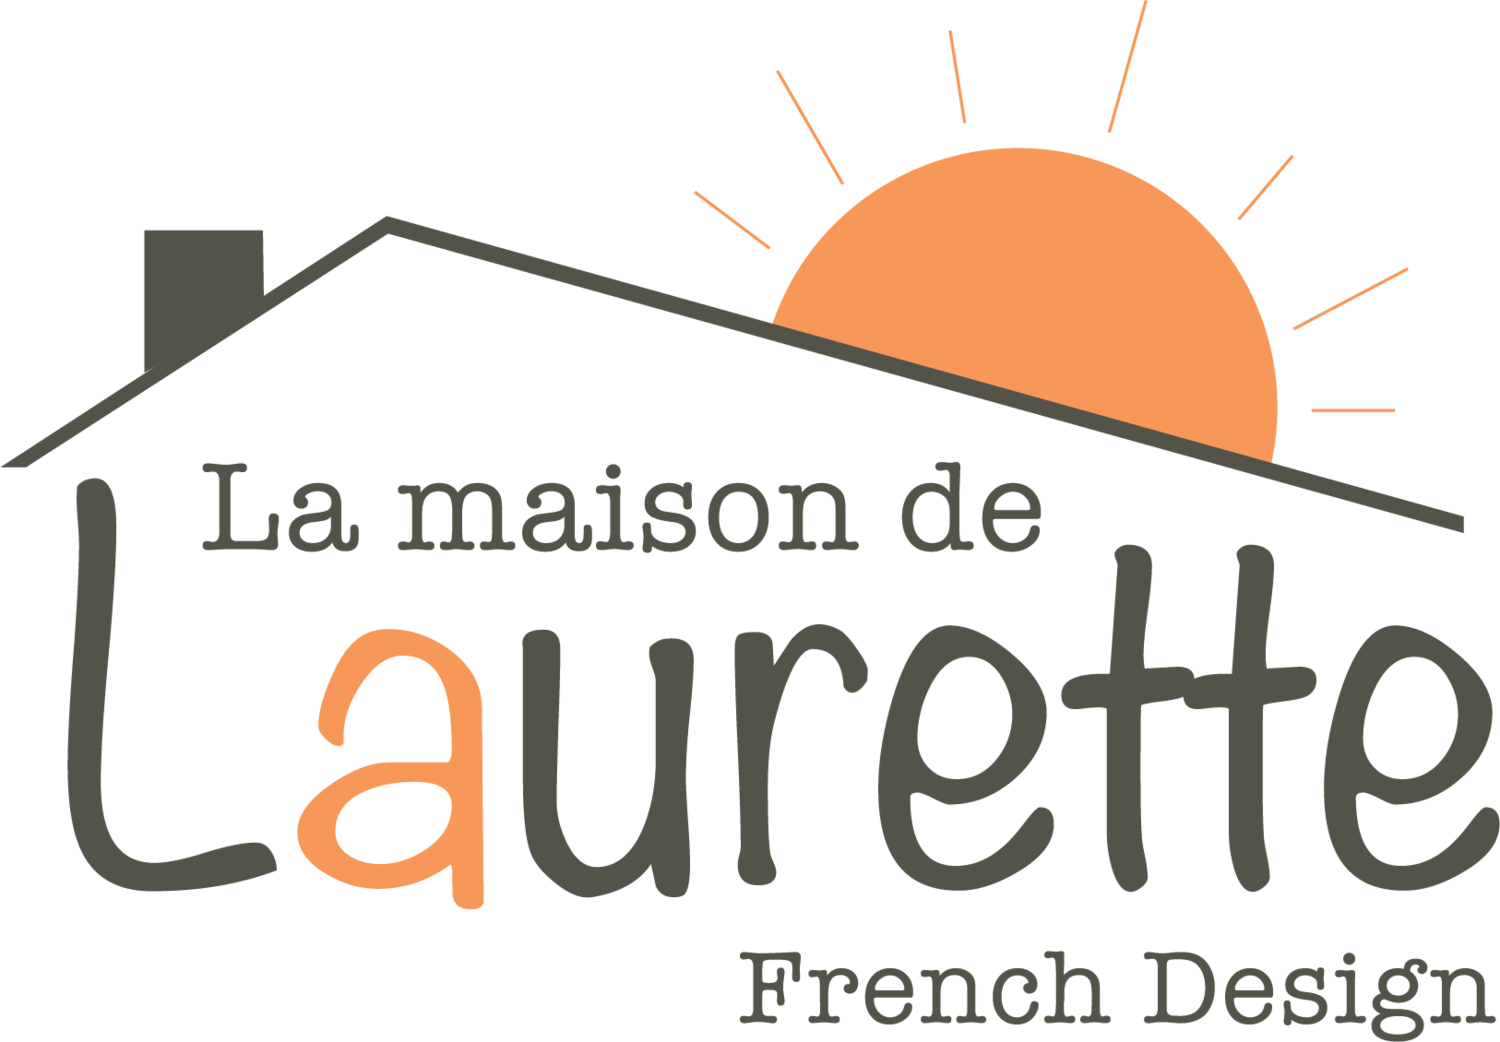 La maison de Laurette French Design